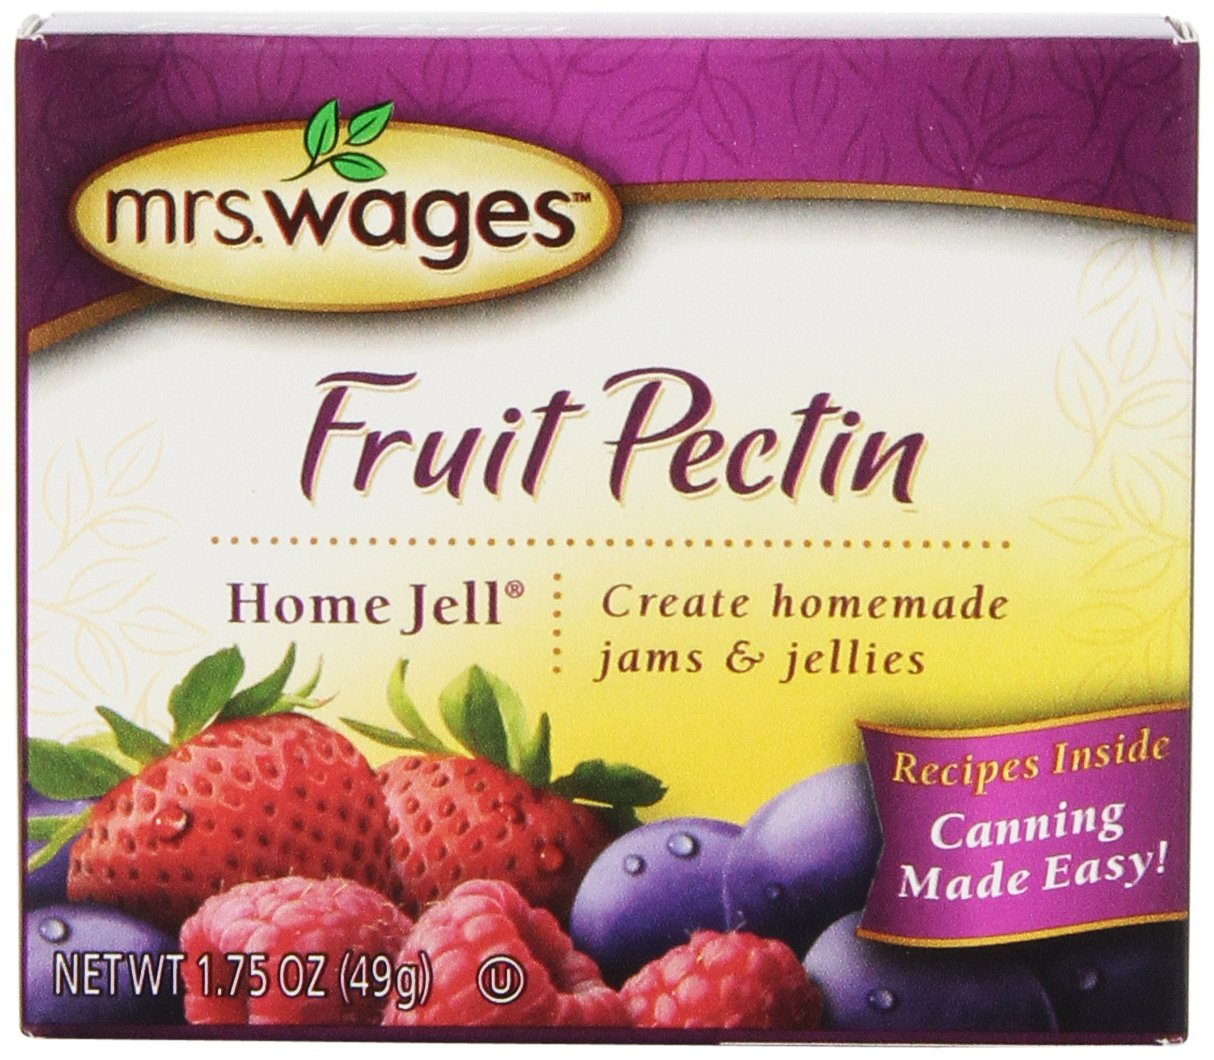 Mrs. Wages Fruit Pectin Home Jell (VALUE PACK of 12)